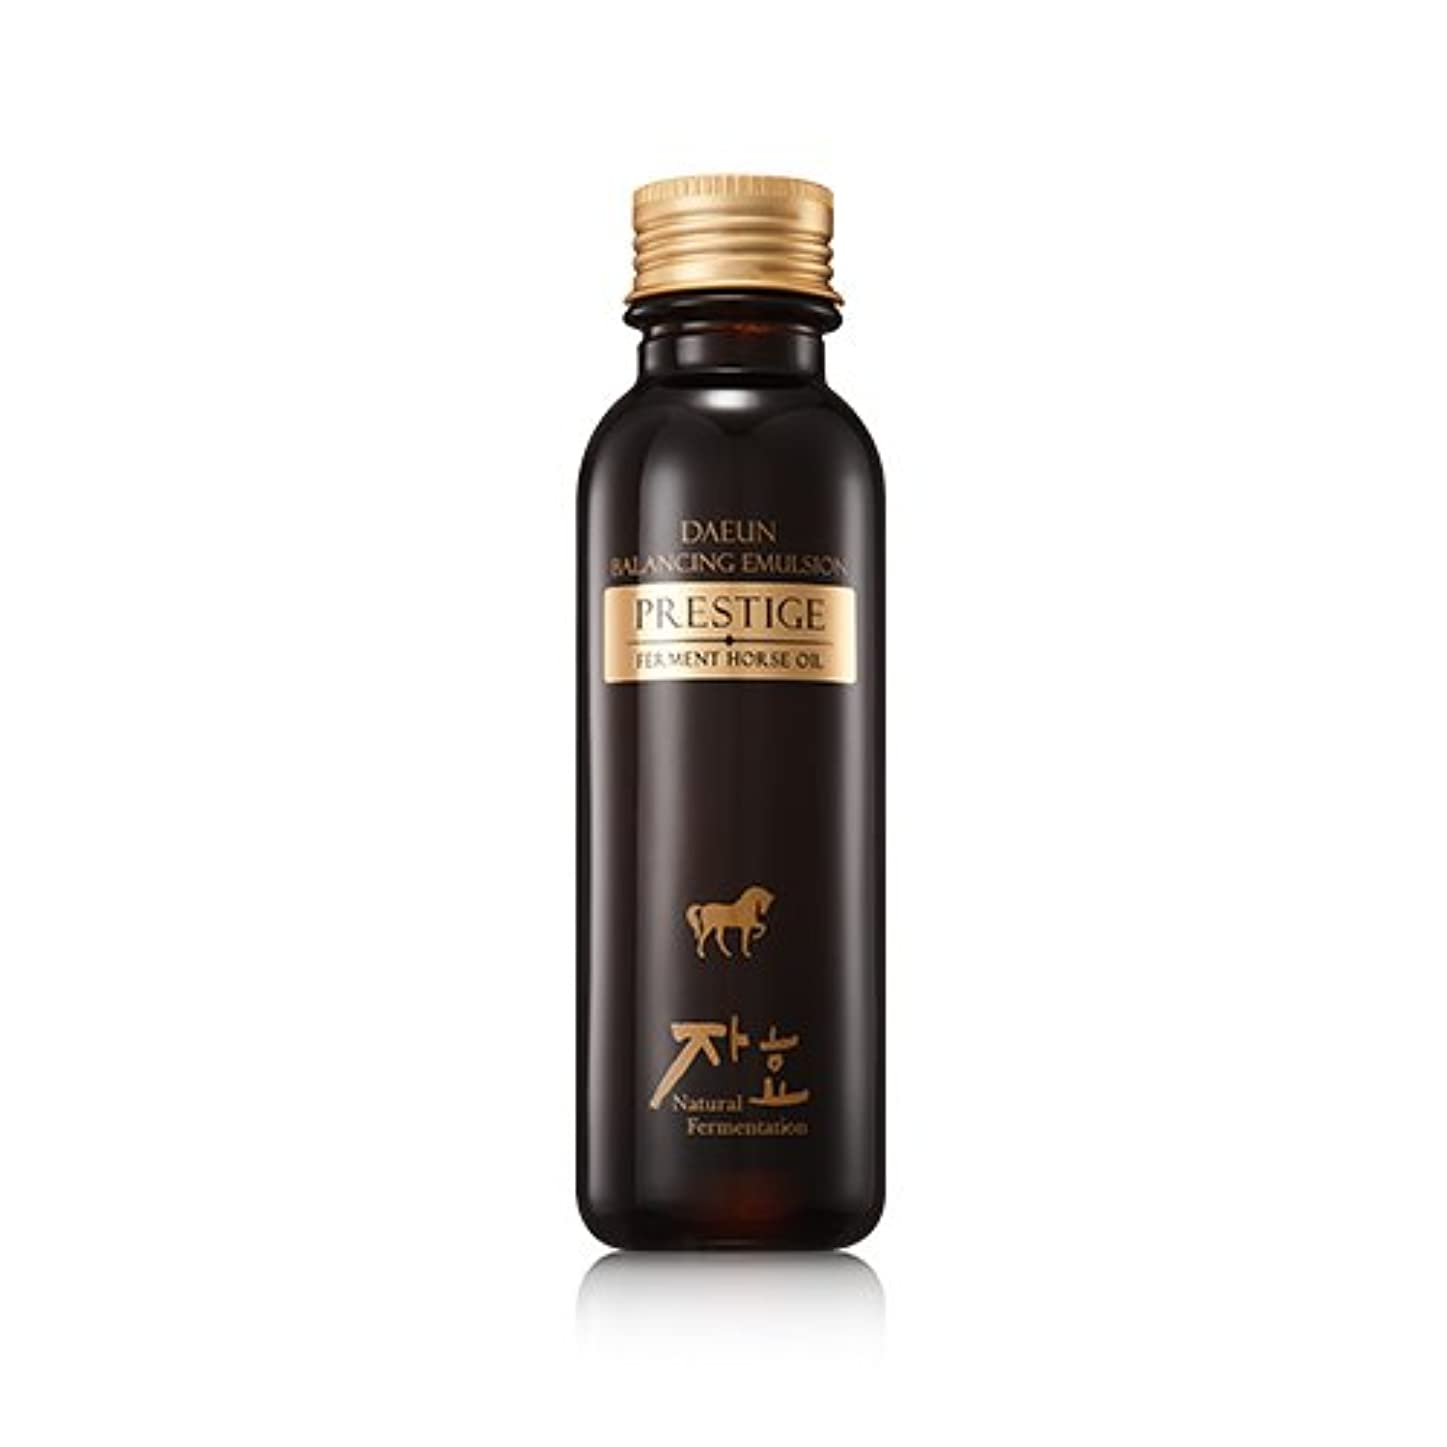 桁り告白するZHAHYO Daeun Balancing Prestige Fermented Horse Oil Emulsion(Lotion) 150ml/Korea Cosmetics